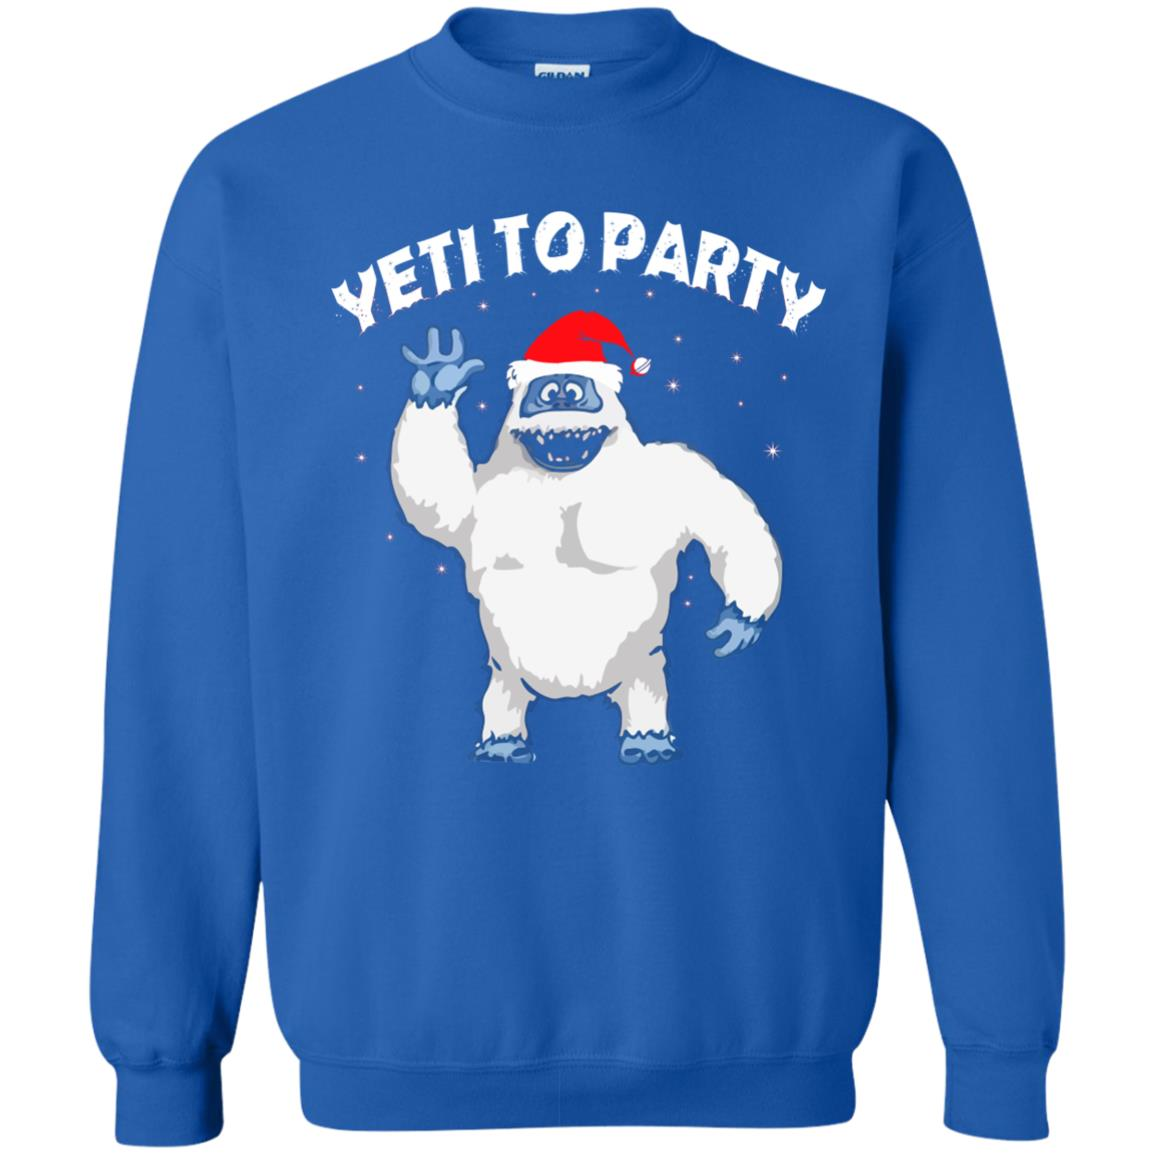 image 35 - Yeti to Party Christmas Sweater, Hoodie